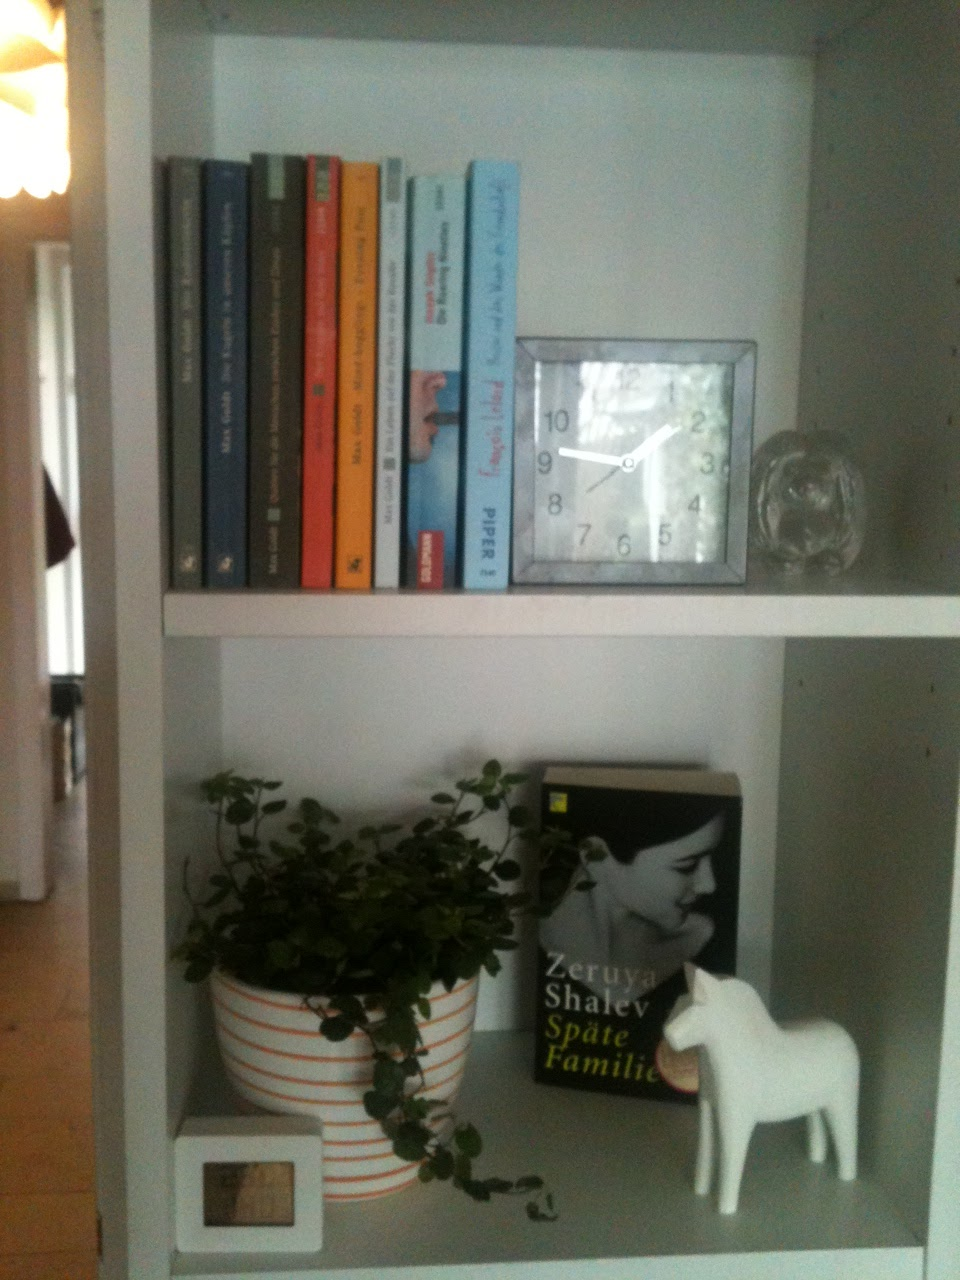 add a plant and display a book cover you love